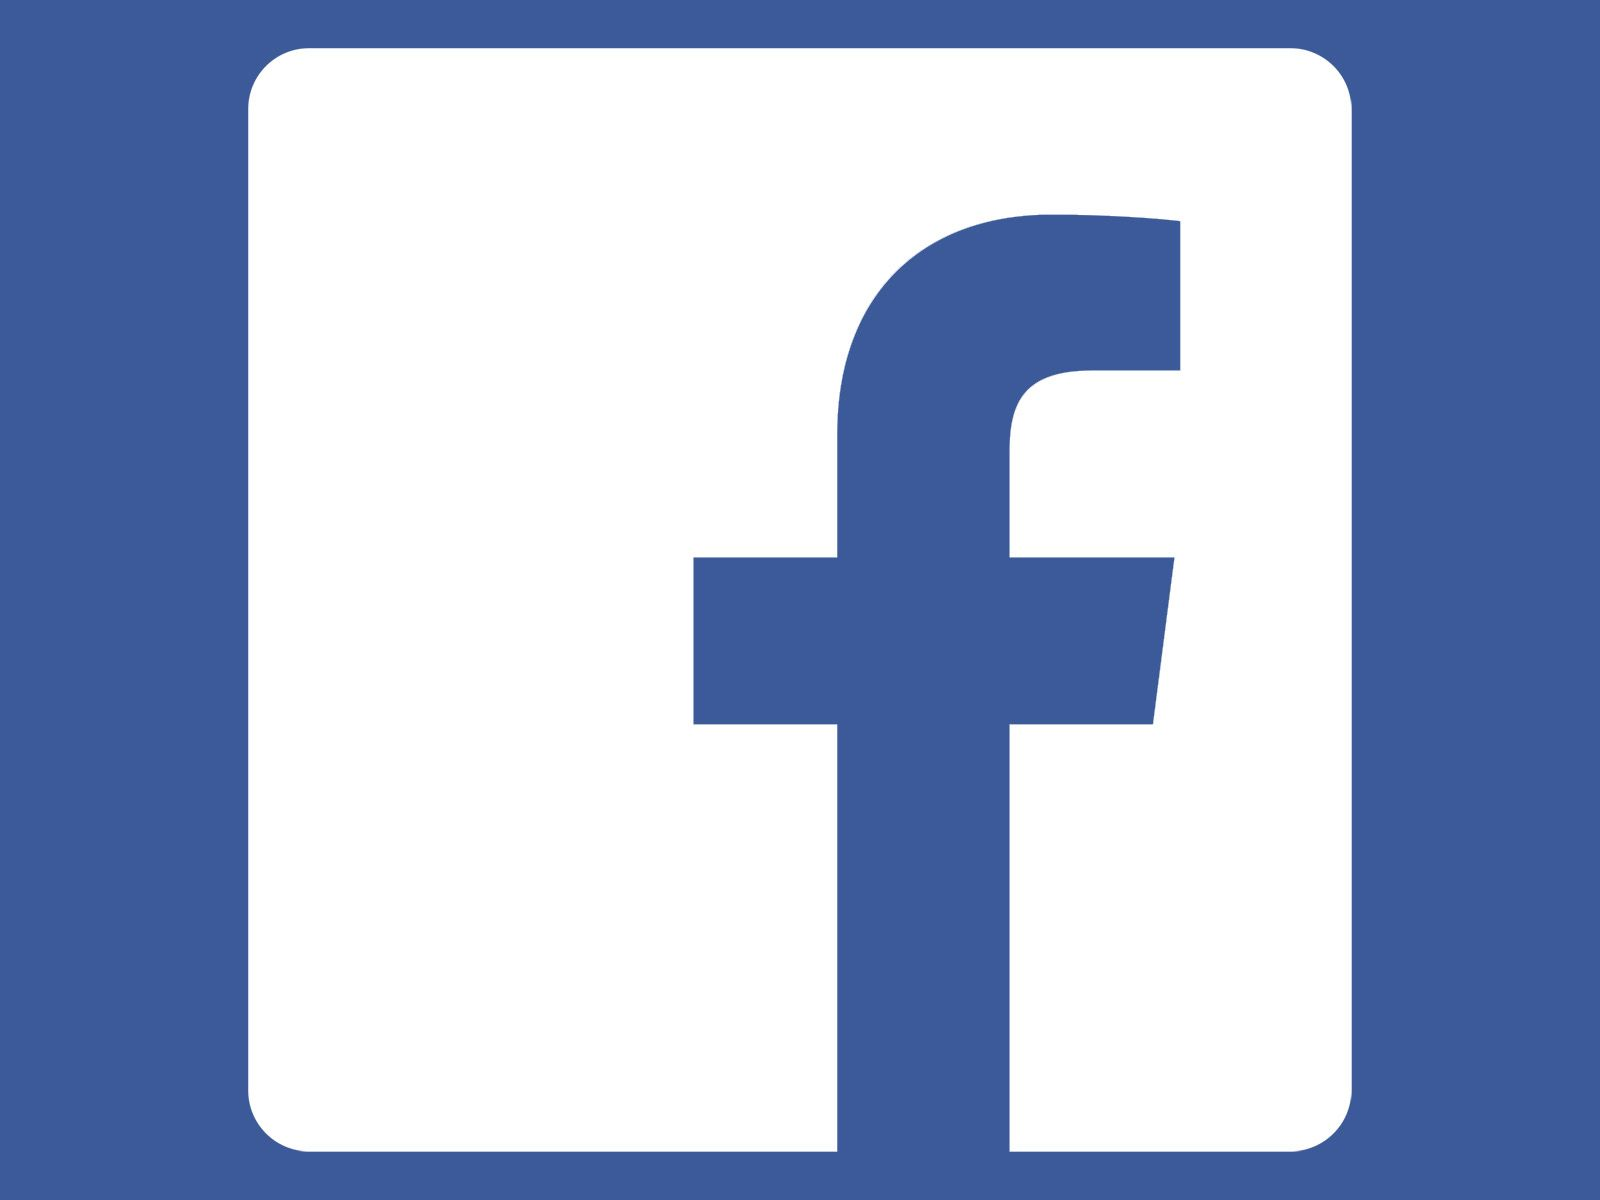 Facebok Logo - Facebook Logo, FB symbol meaning, History and Evolution